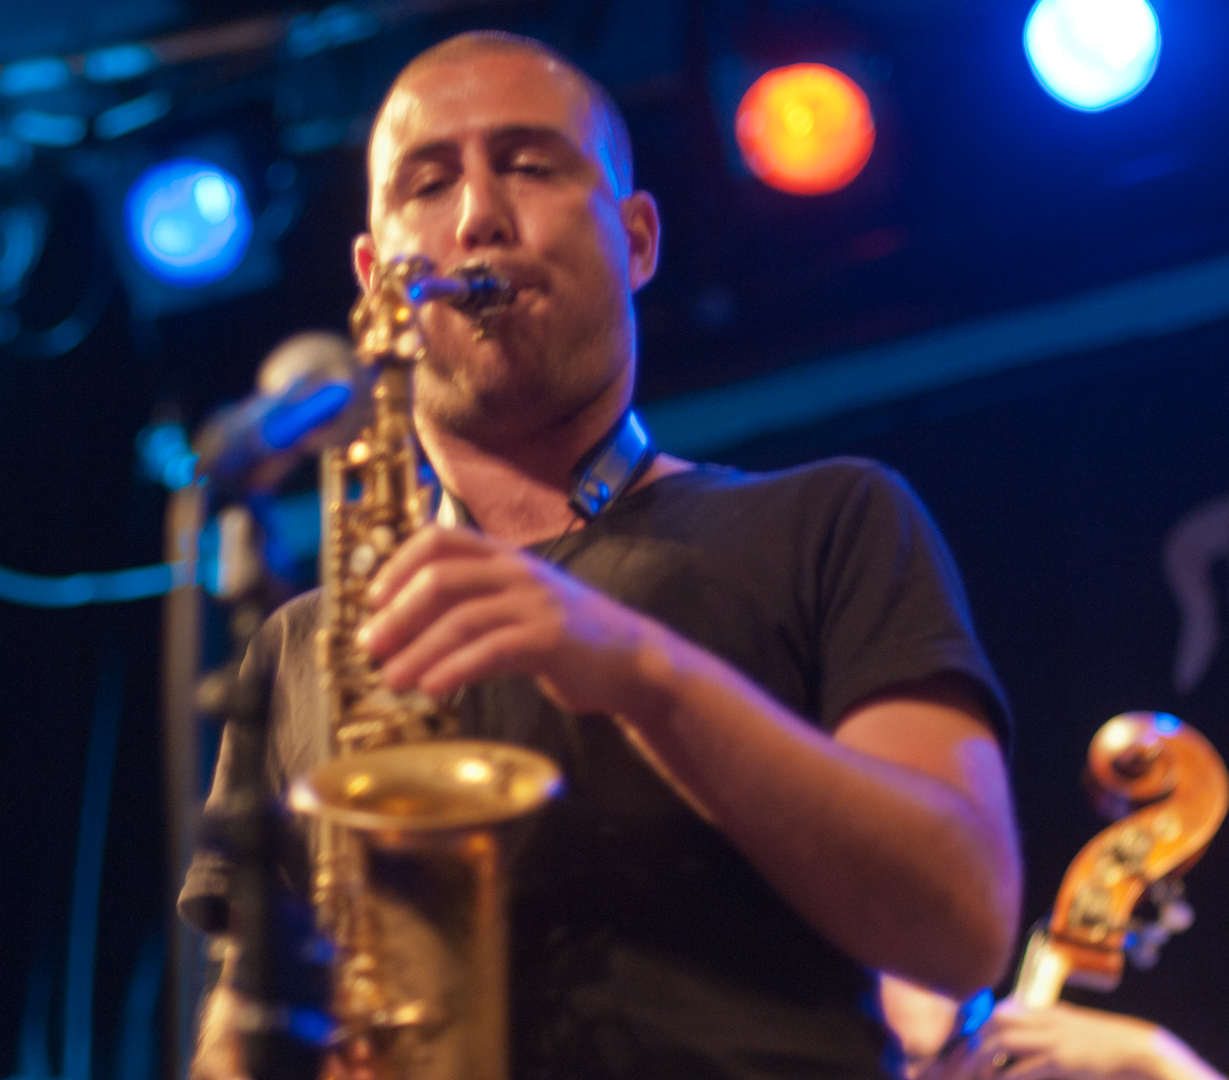 Guy Sion at the Oslo Jazz Festival Jam Sessions